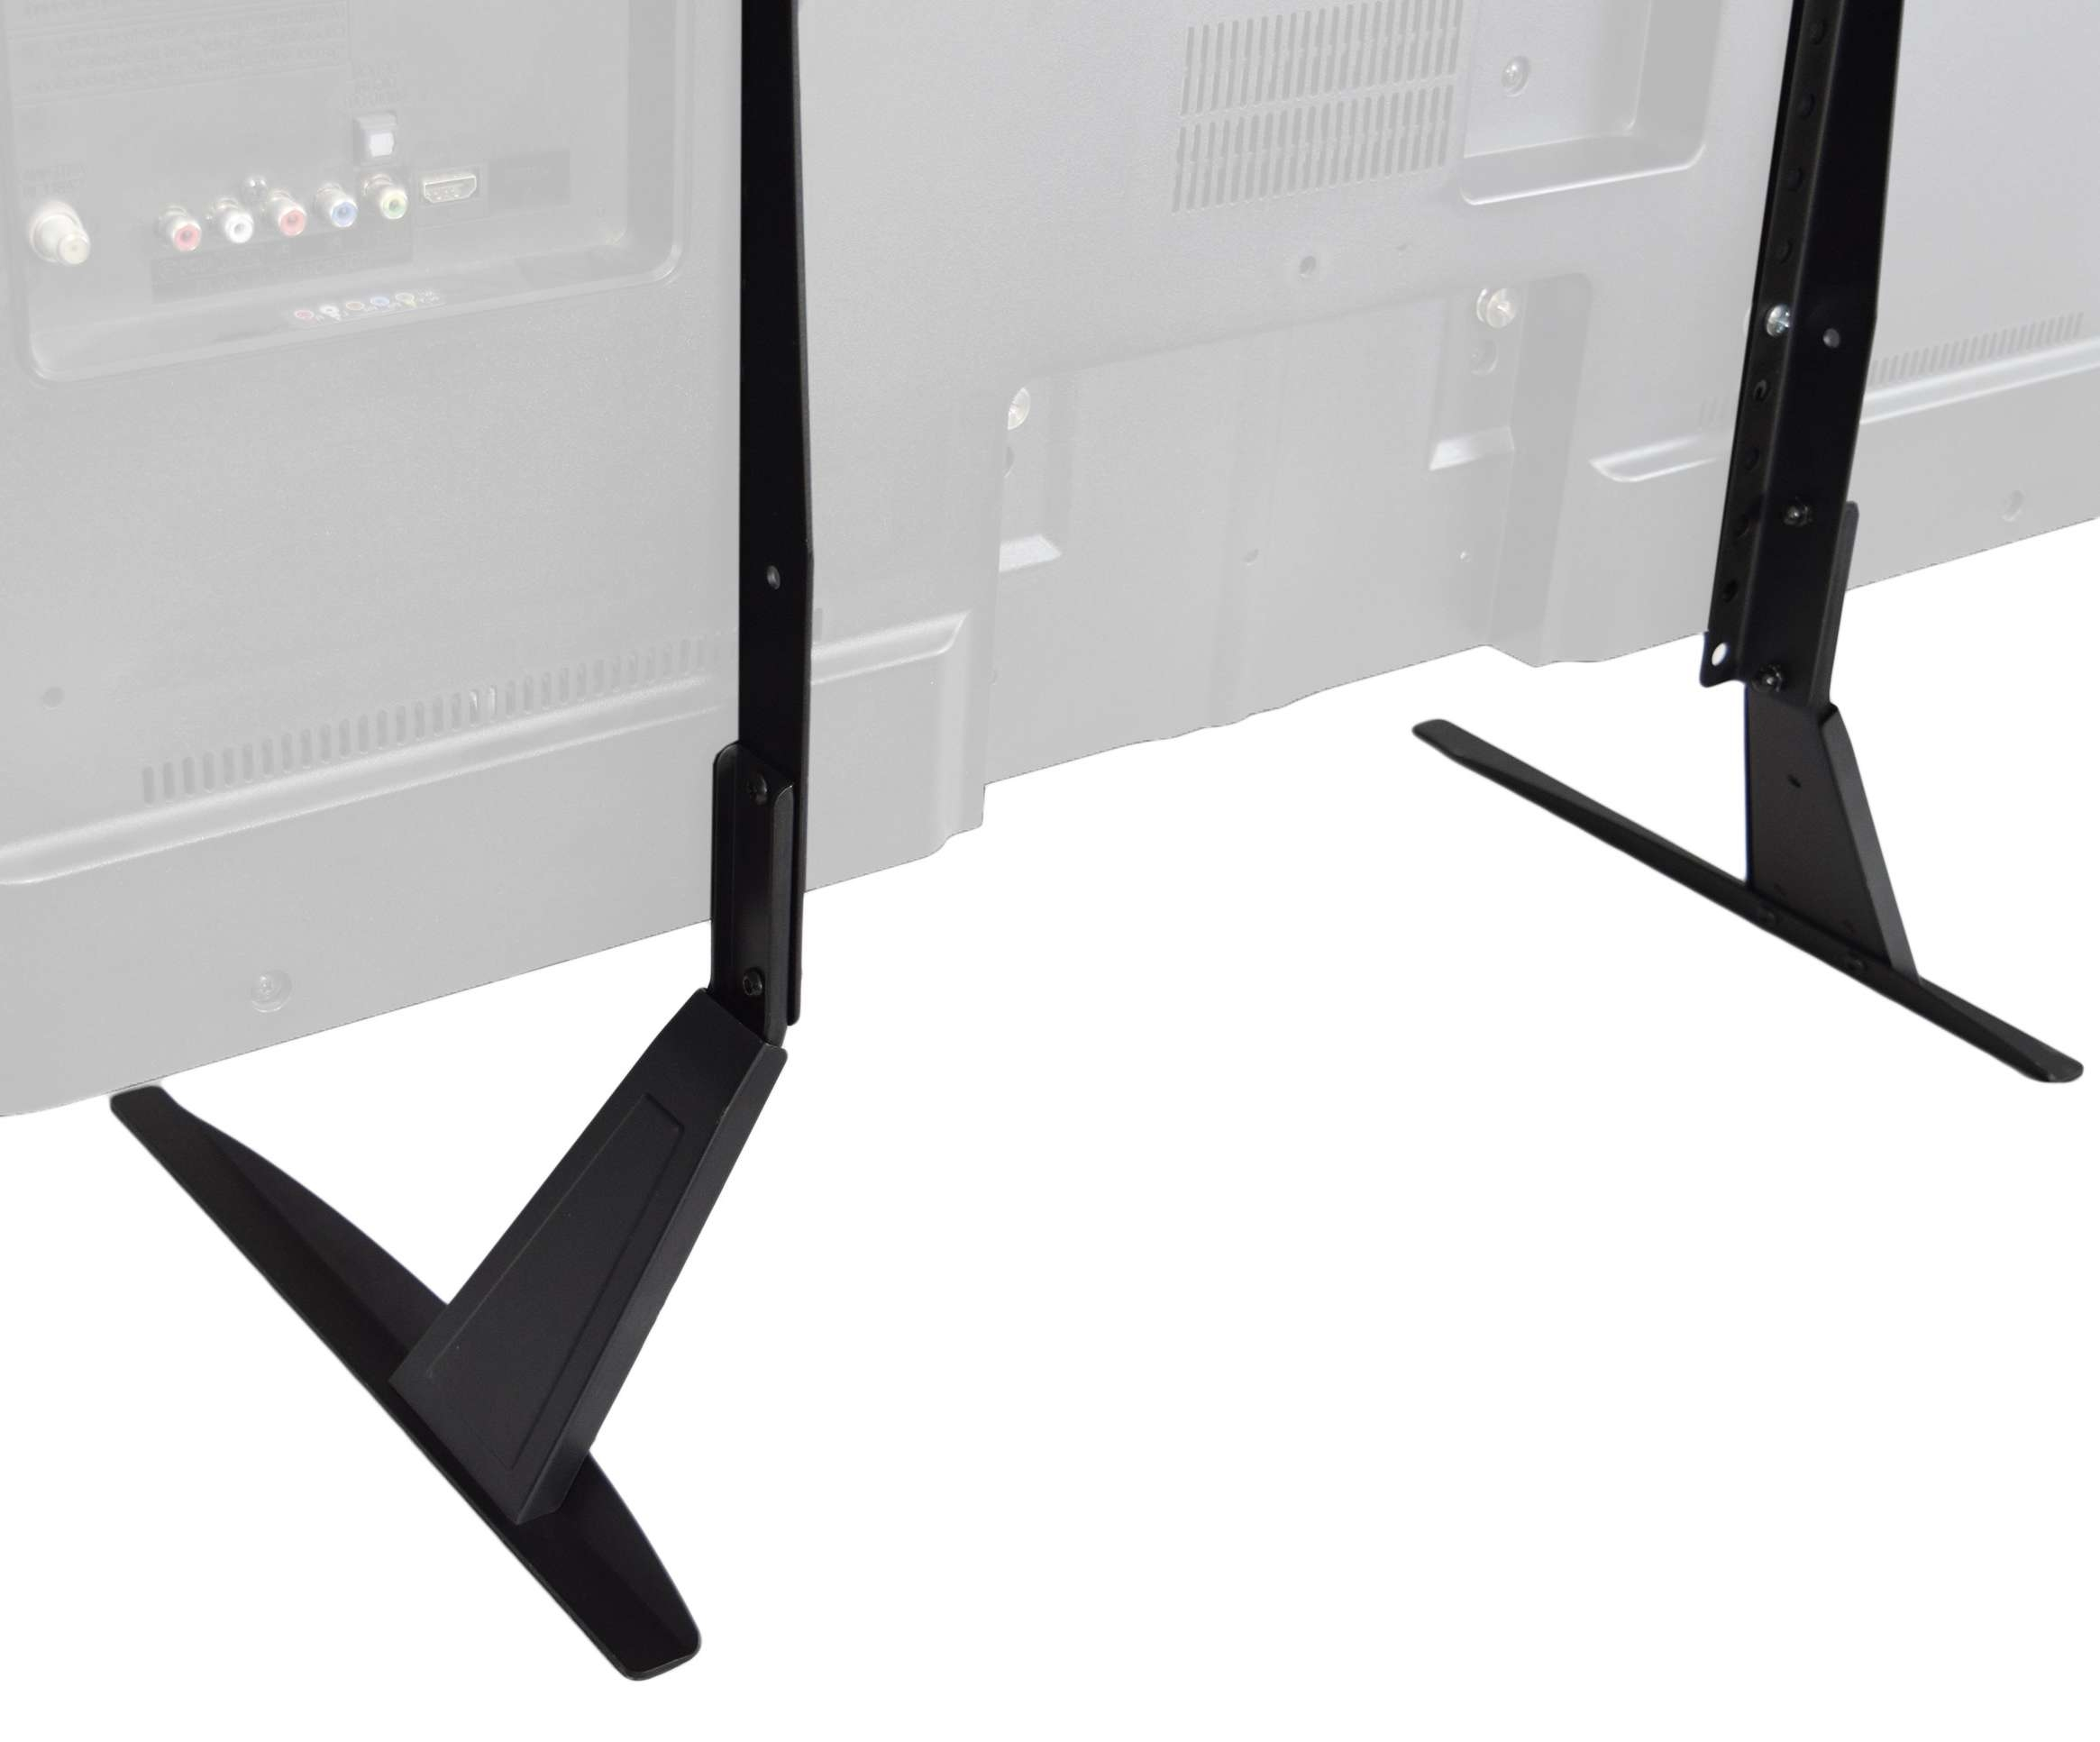 Vivo Universal Lcd Flat Screen Tv Table Top Stand | Base Fits 27 Intended For Universal Flat Screen Tv Stands (View 3 of 20)